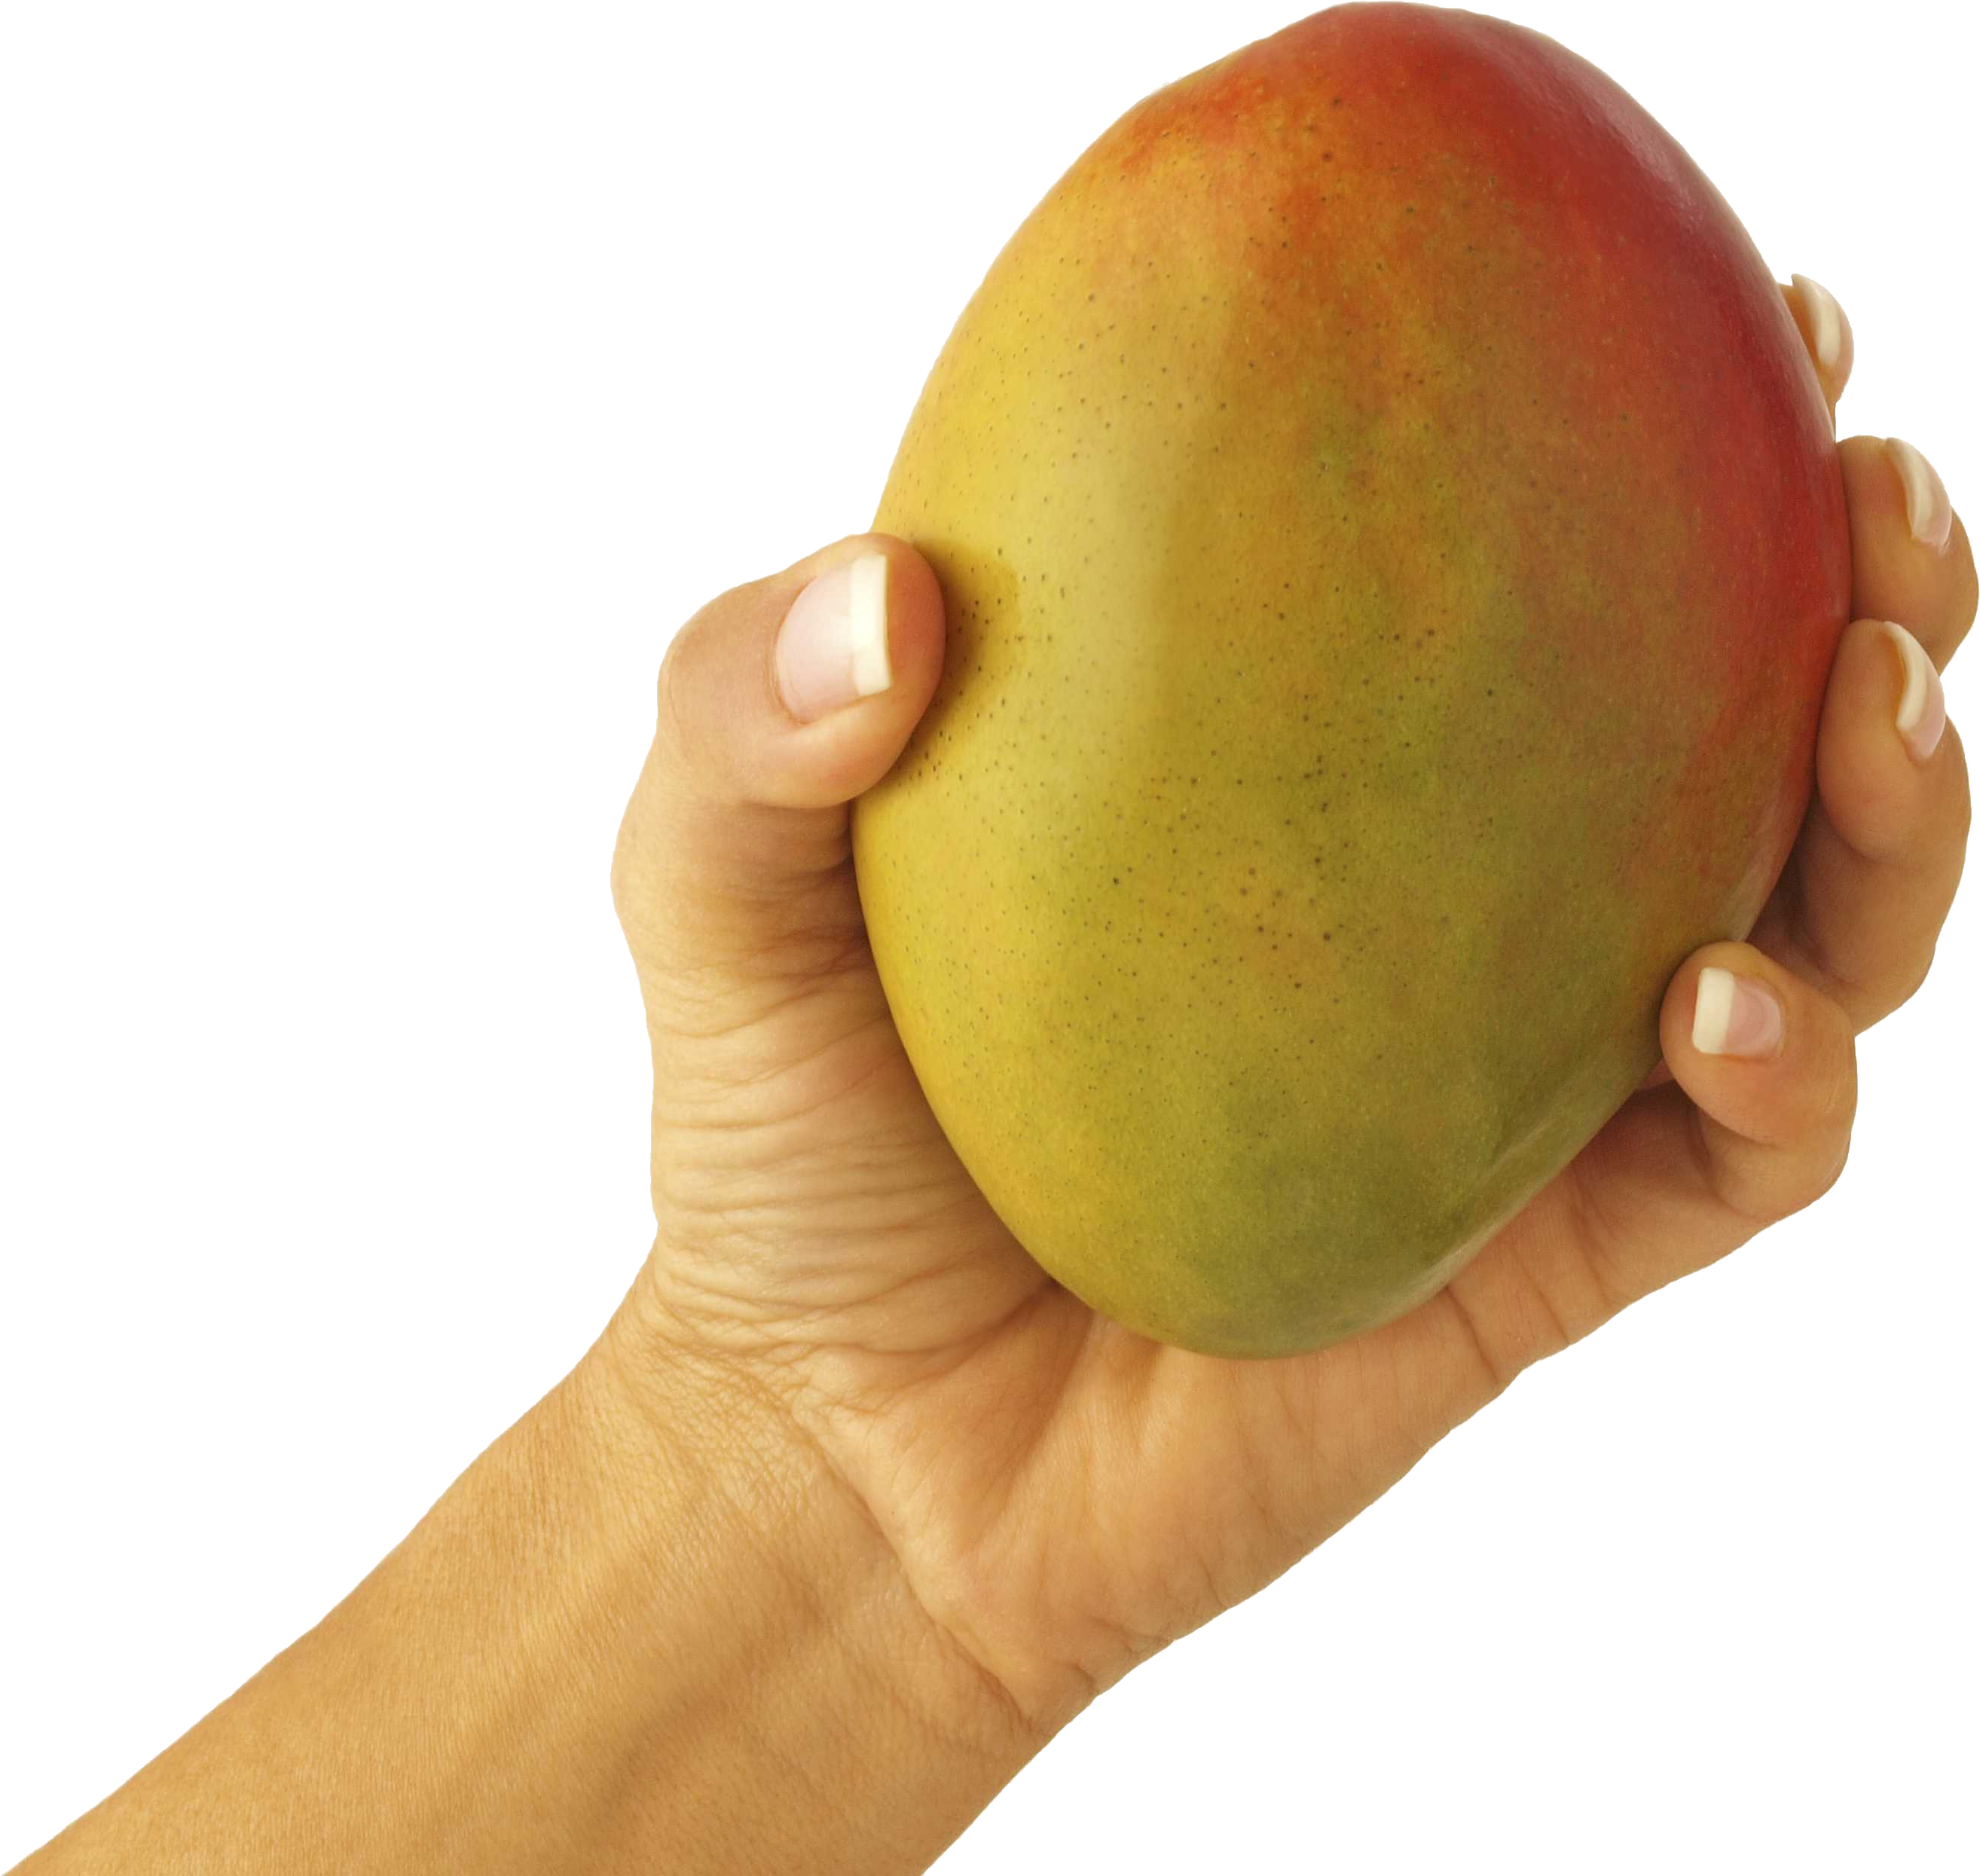 Mango clipart five. In hand png image